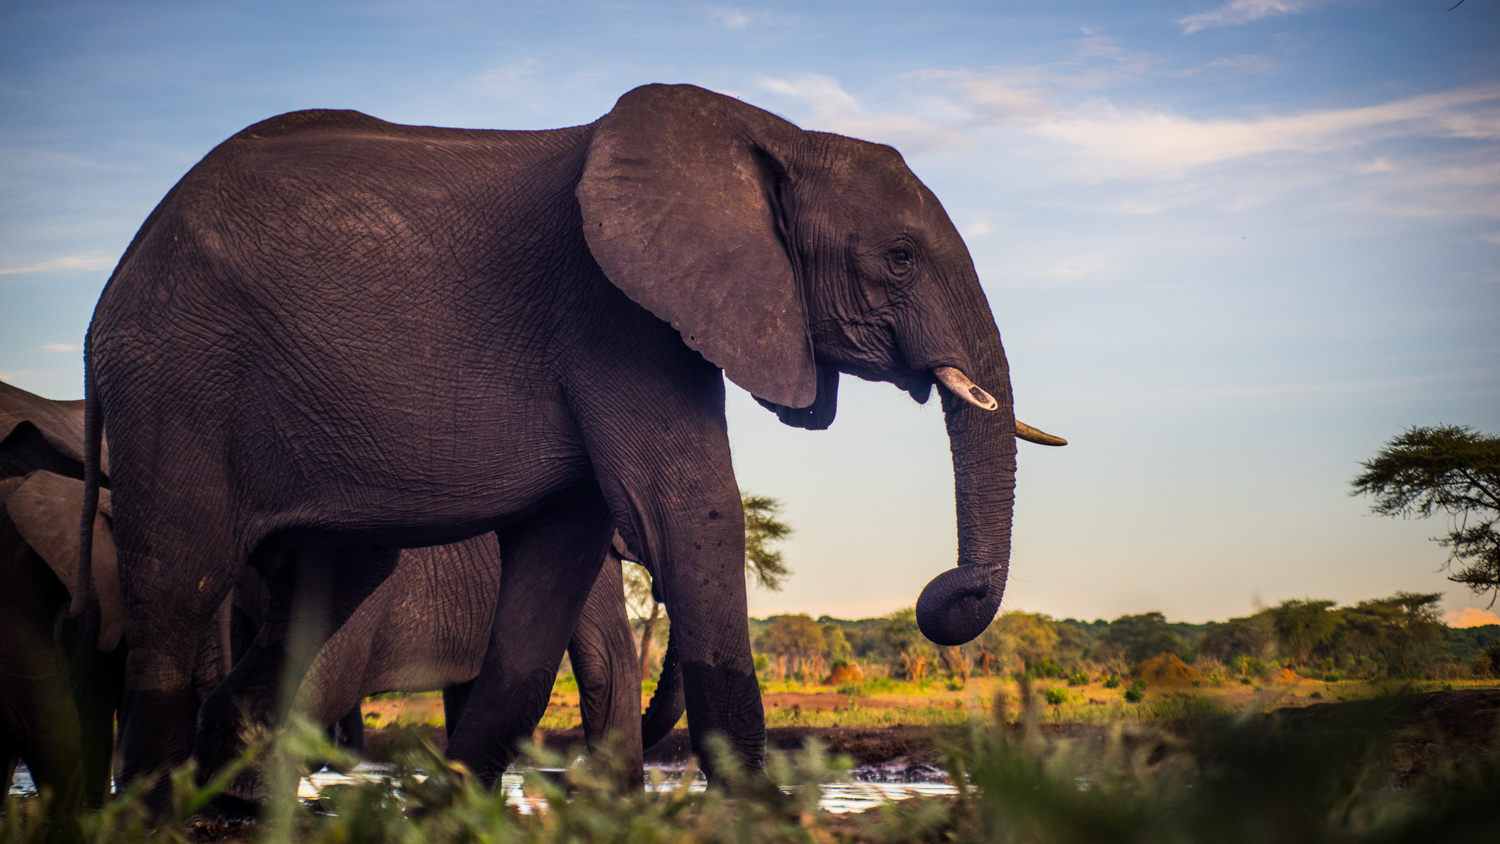 Elephants at the Watering Hole in Botswana.